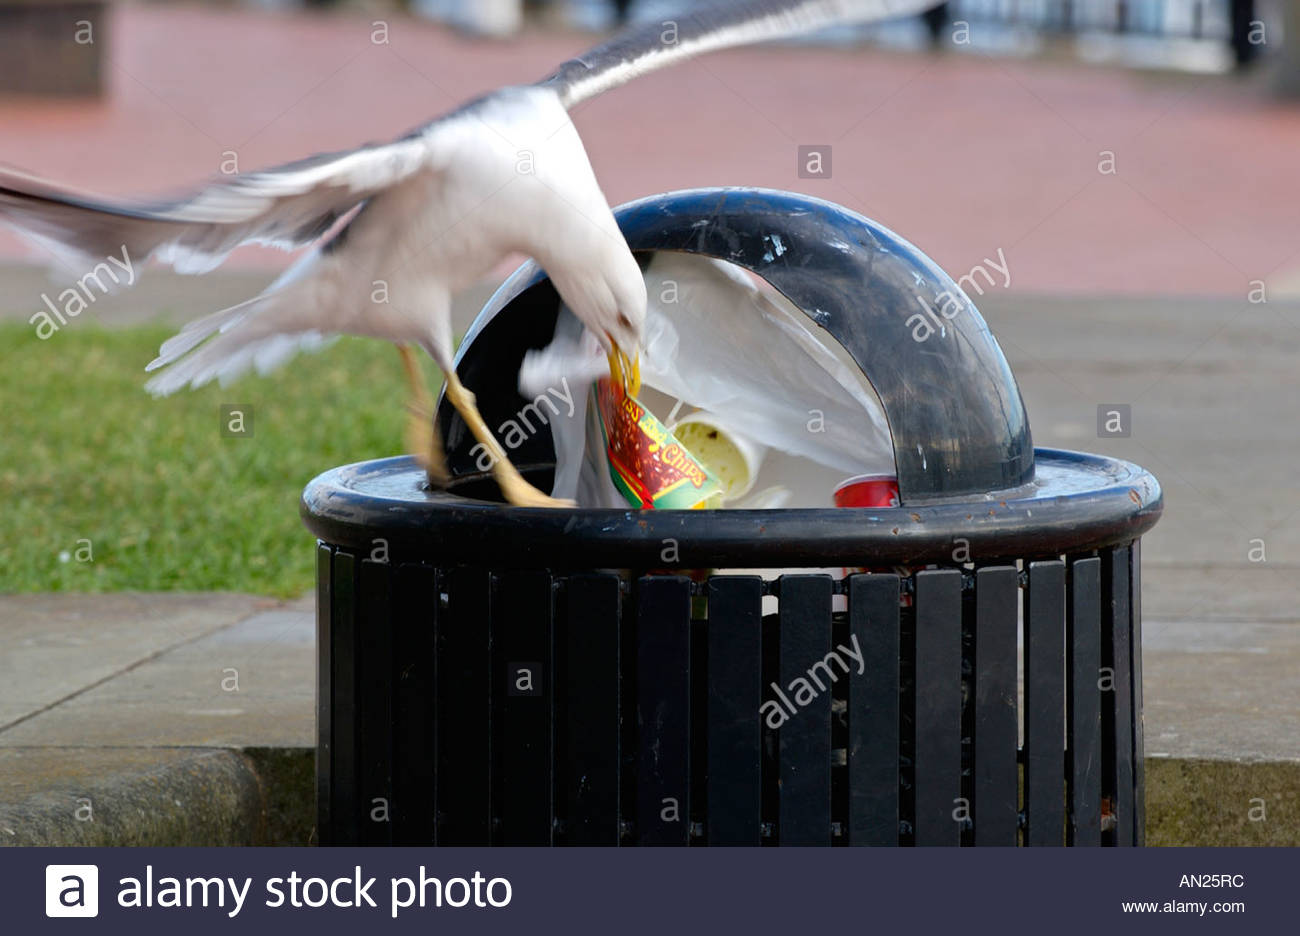 Gull About To Remove Waste Food From Litter Bin In Cardiff Bay South Disassembly Stock Photos Images Alamy An25rc